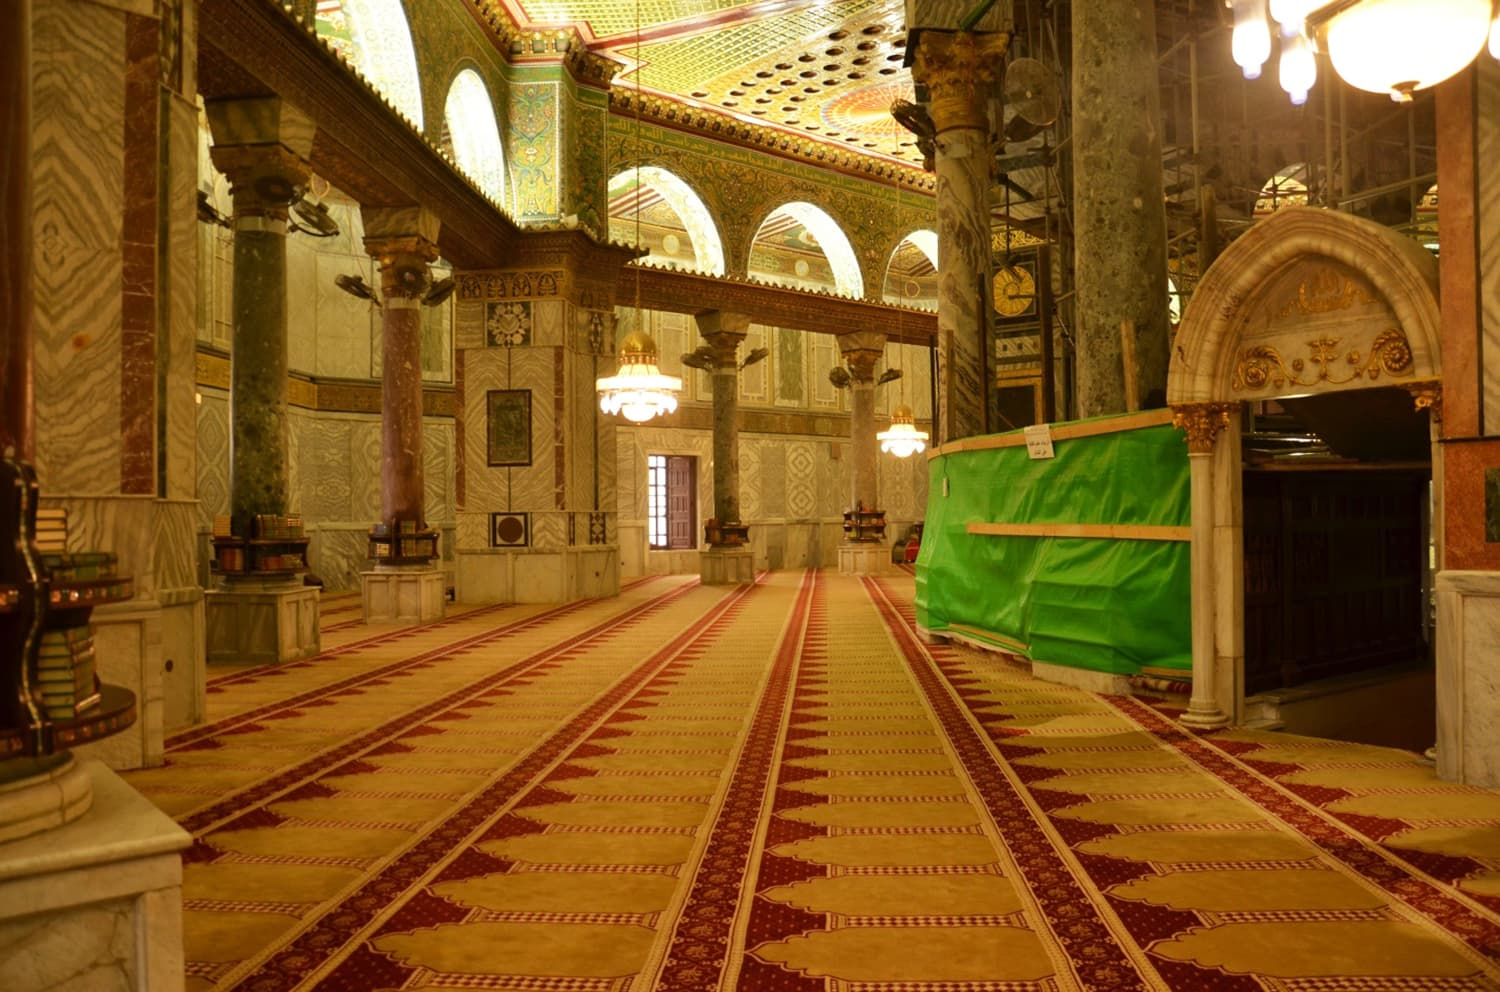 Inside the Dome of the Rock.